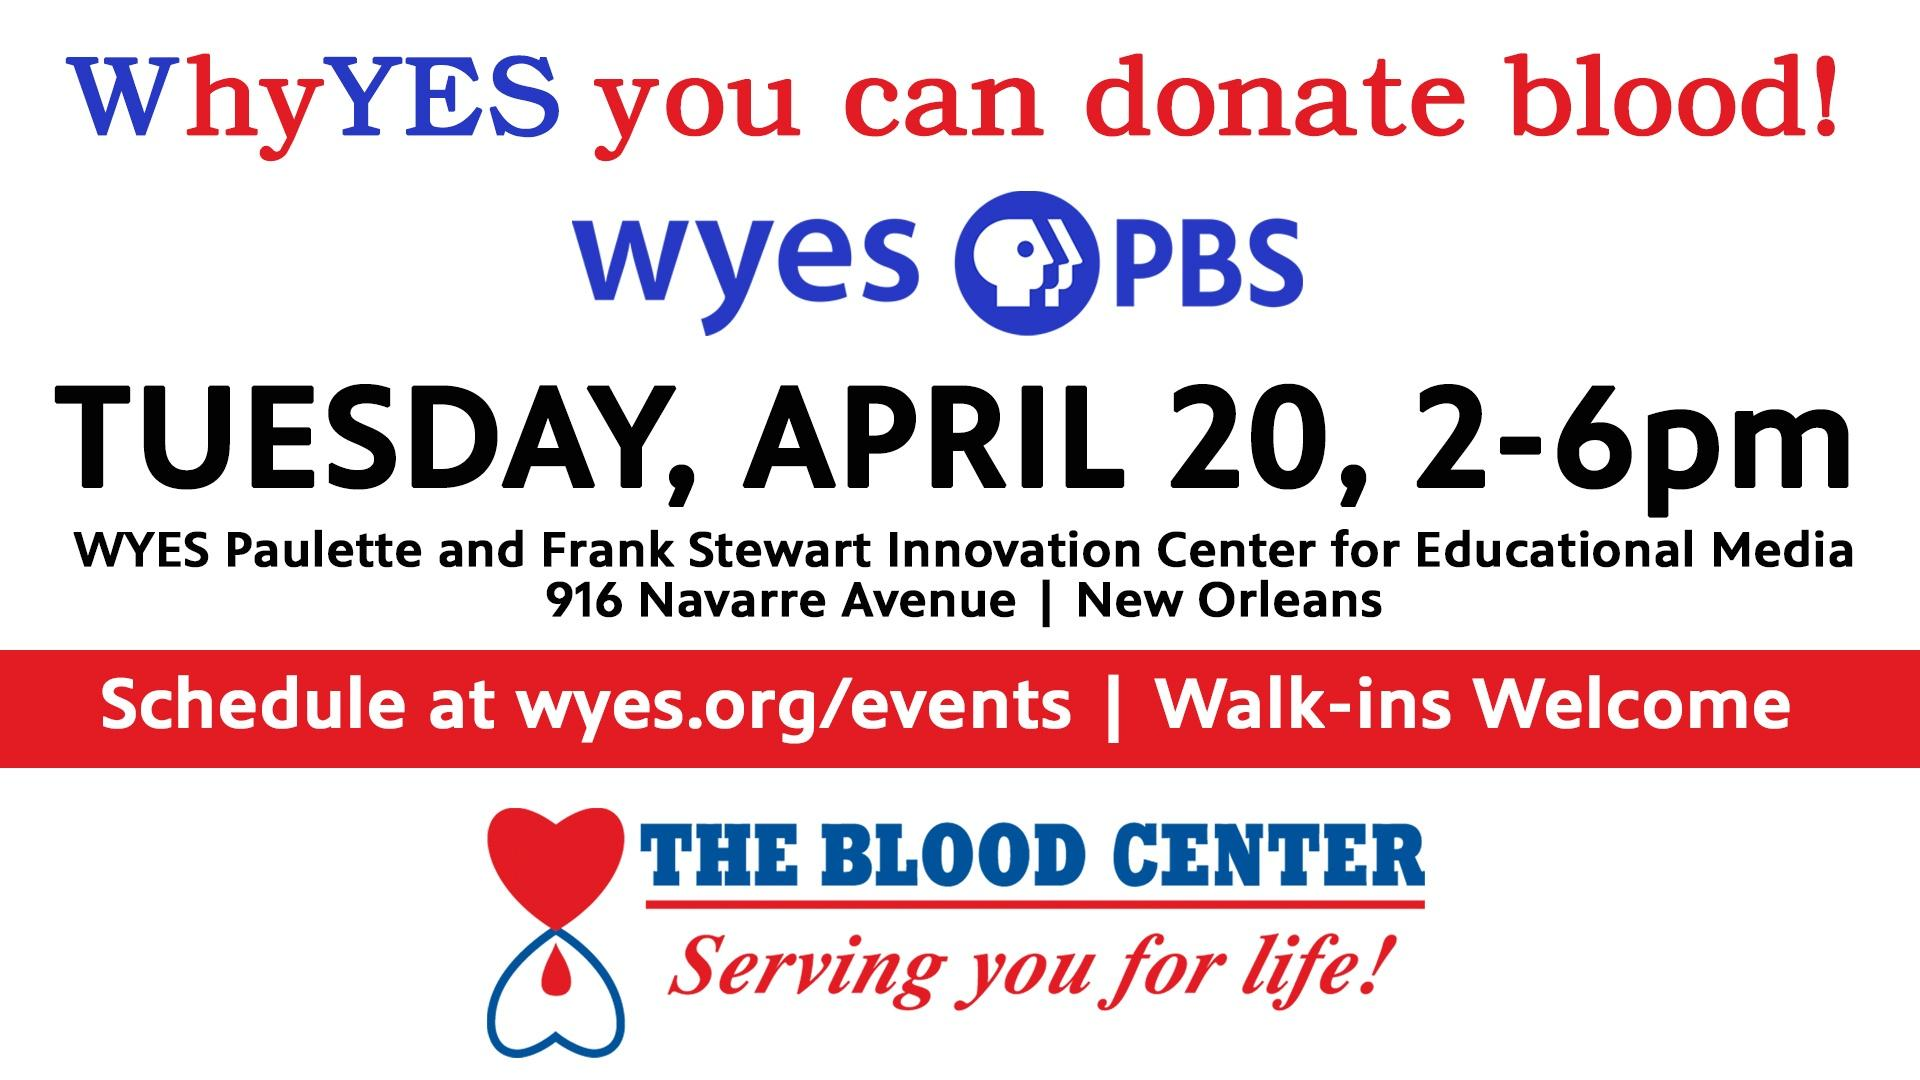 donate blood at wyes on april 20 bw 2-6pm